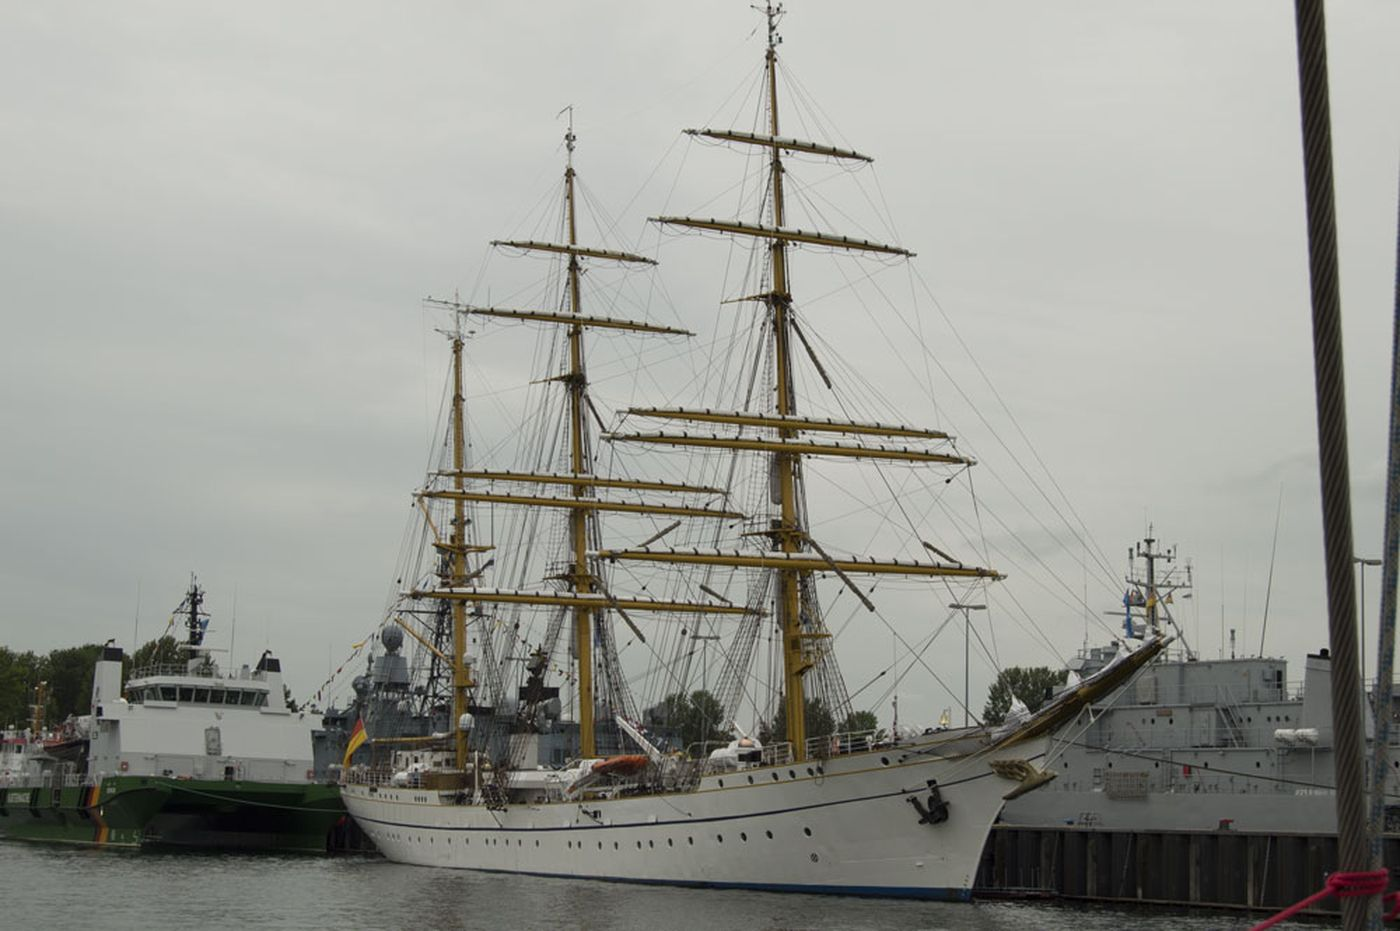 Gorch Fock II in Kiel, 27 June 2015